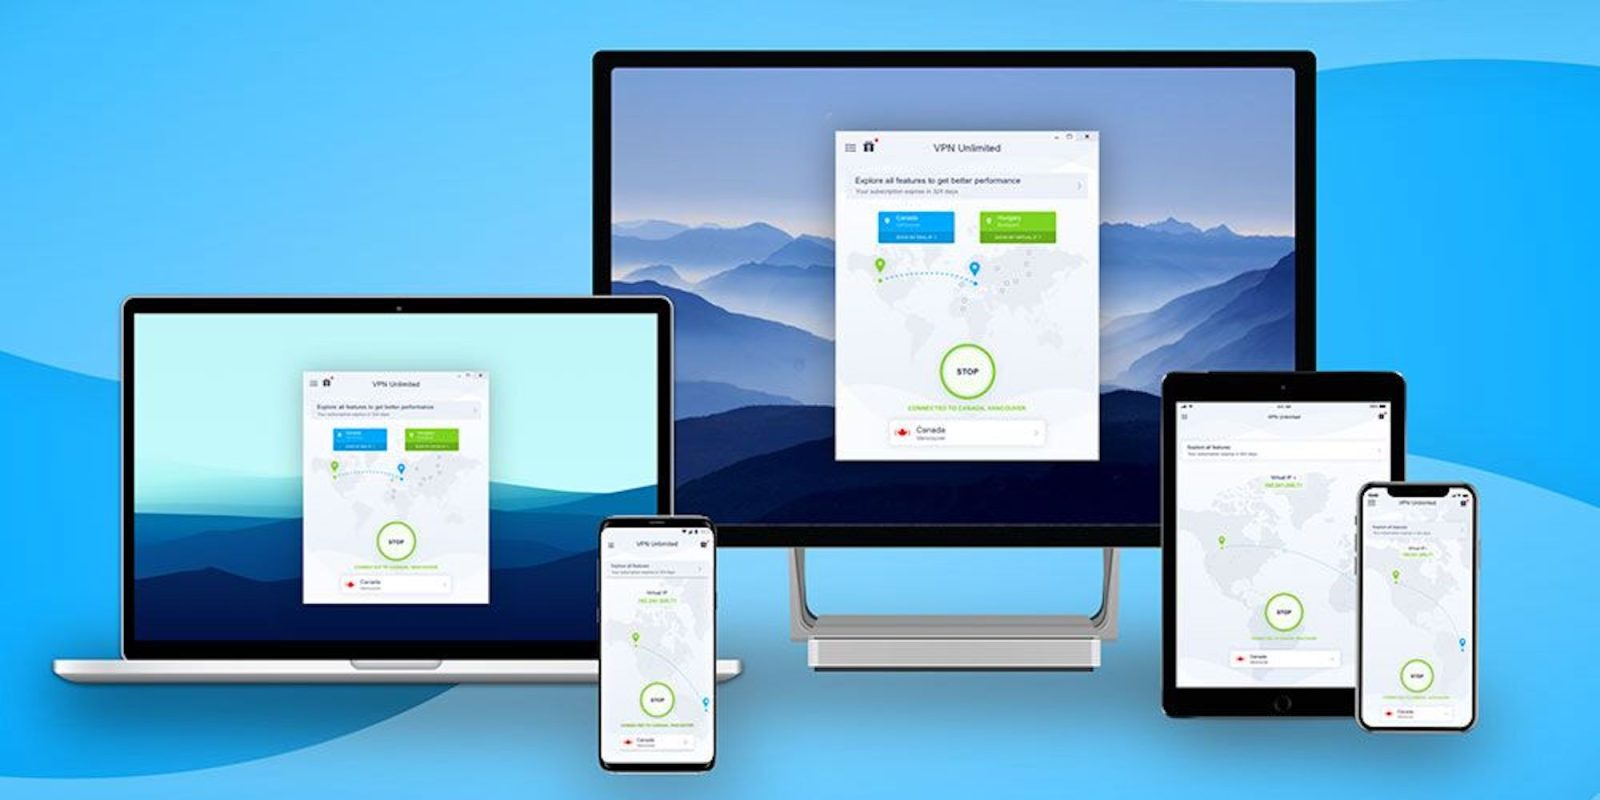 Protect yourself online with a VPN Unlimited lifetime subscription for $19